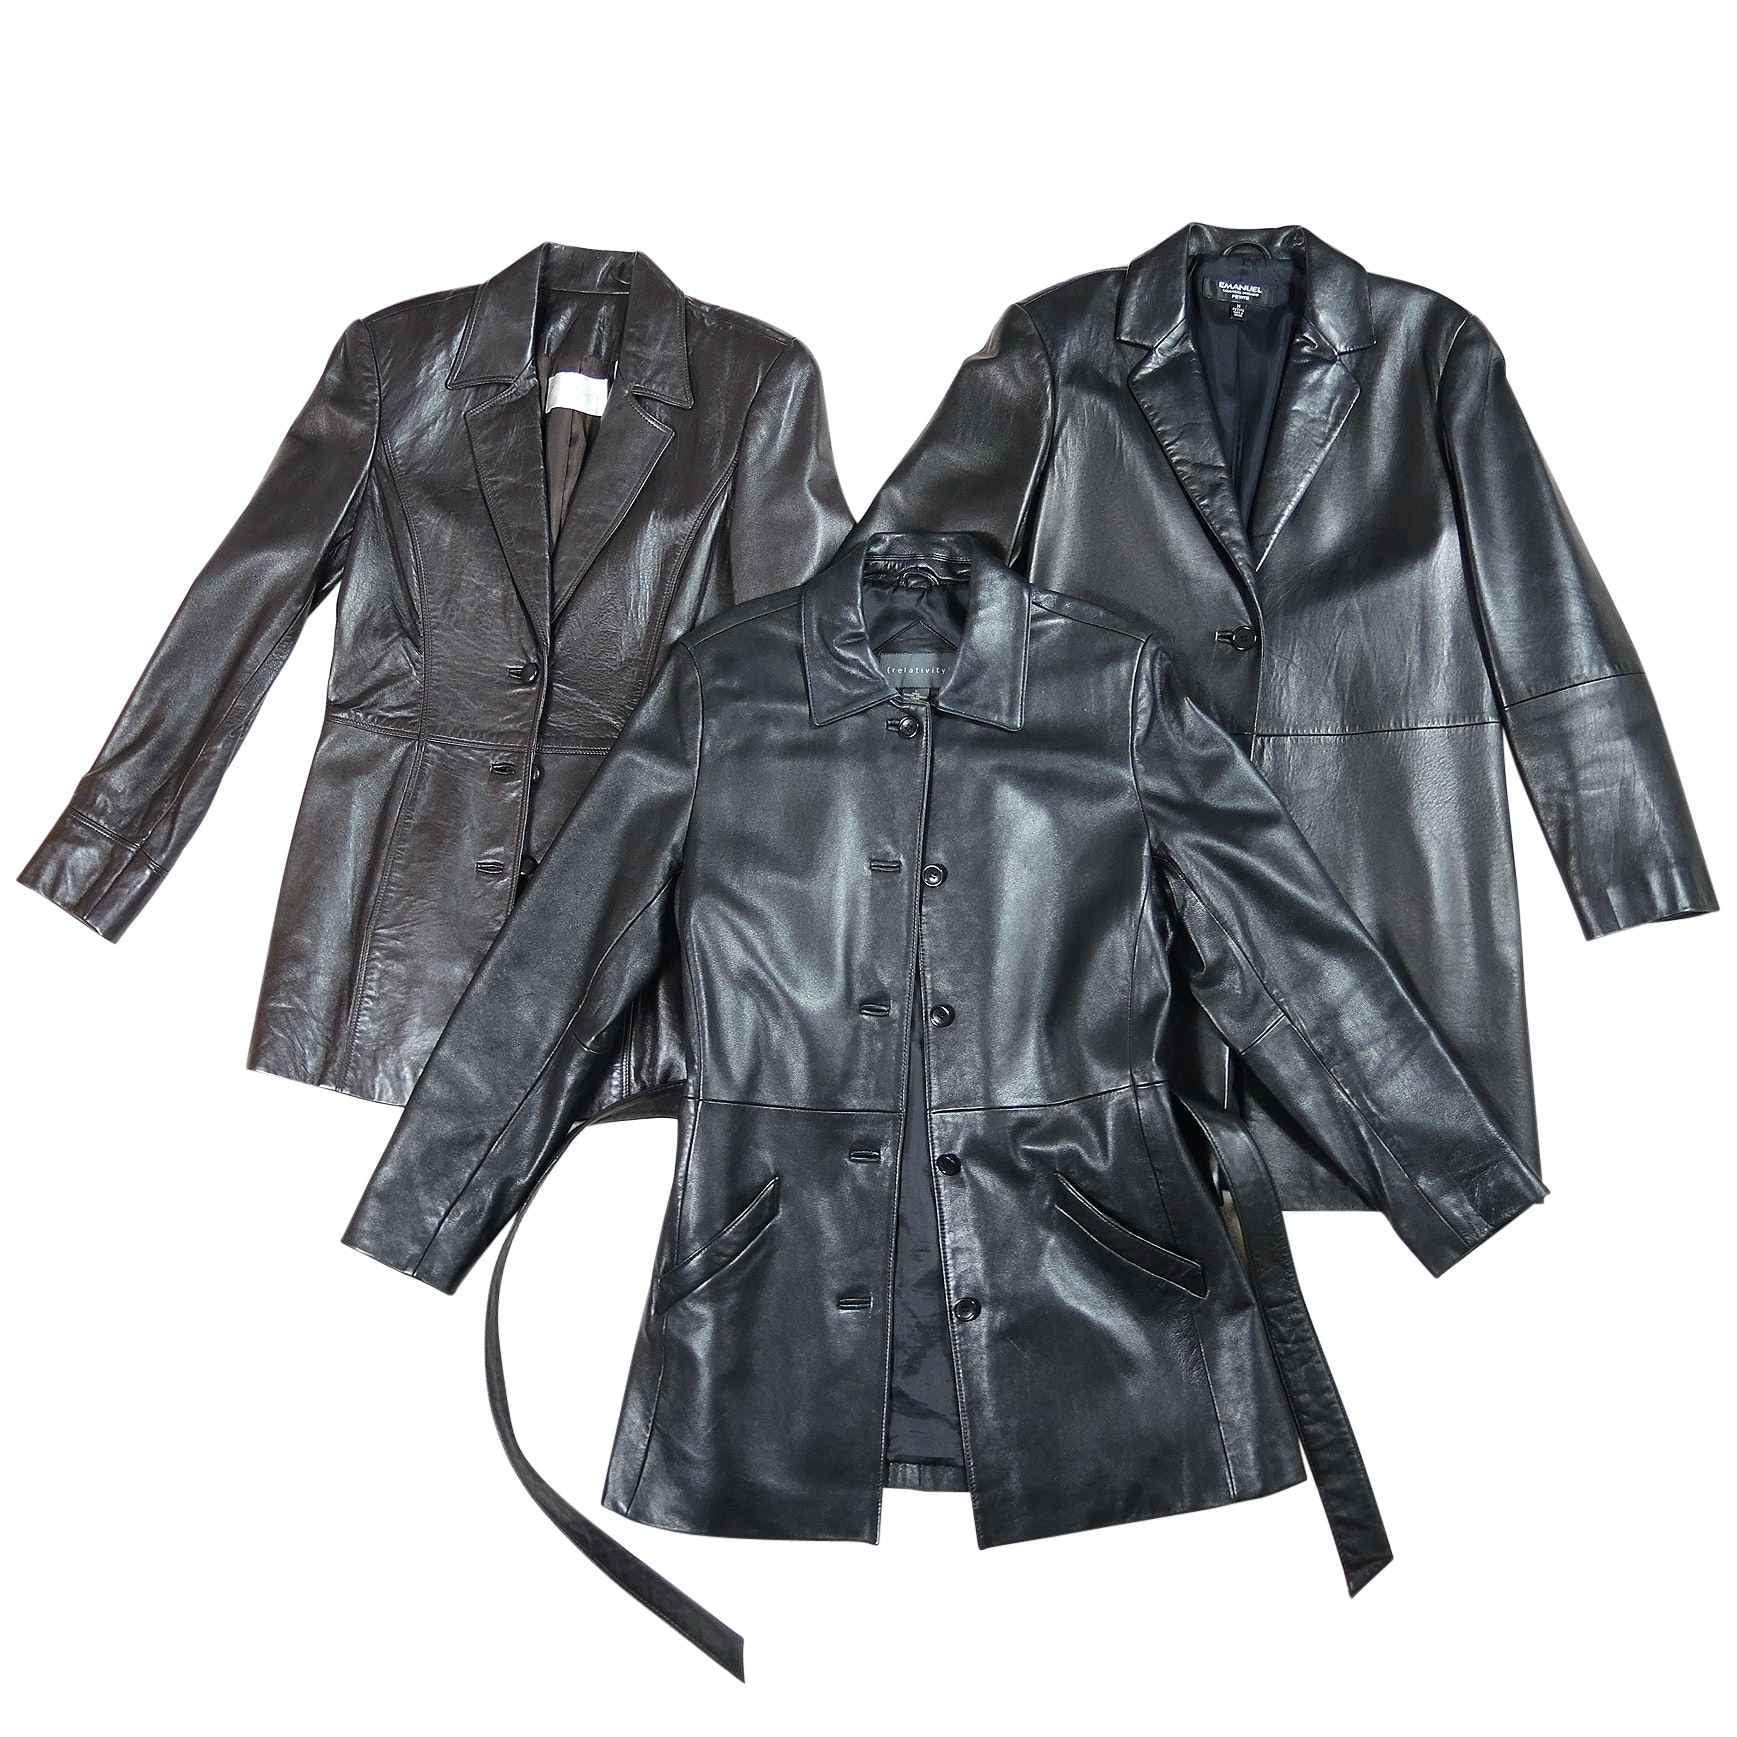 Women's Leather Jackets Including Emanuel by Emanuel Ungaro